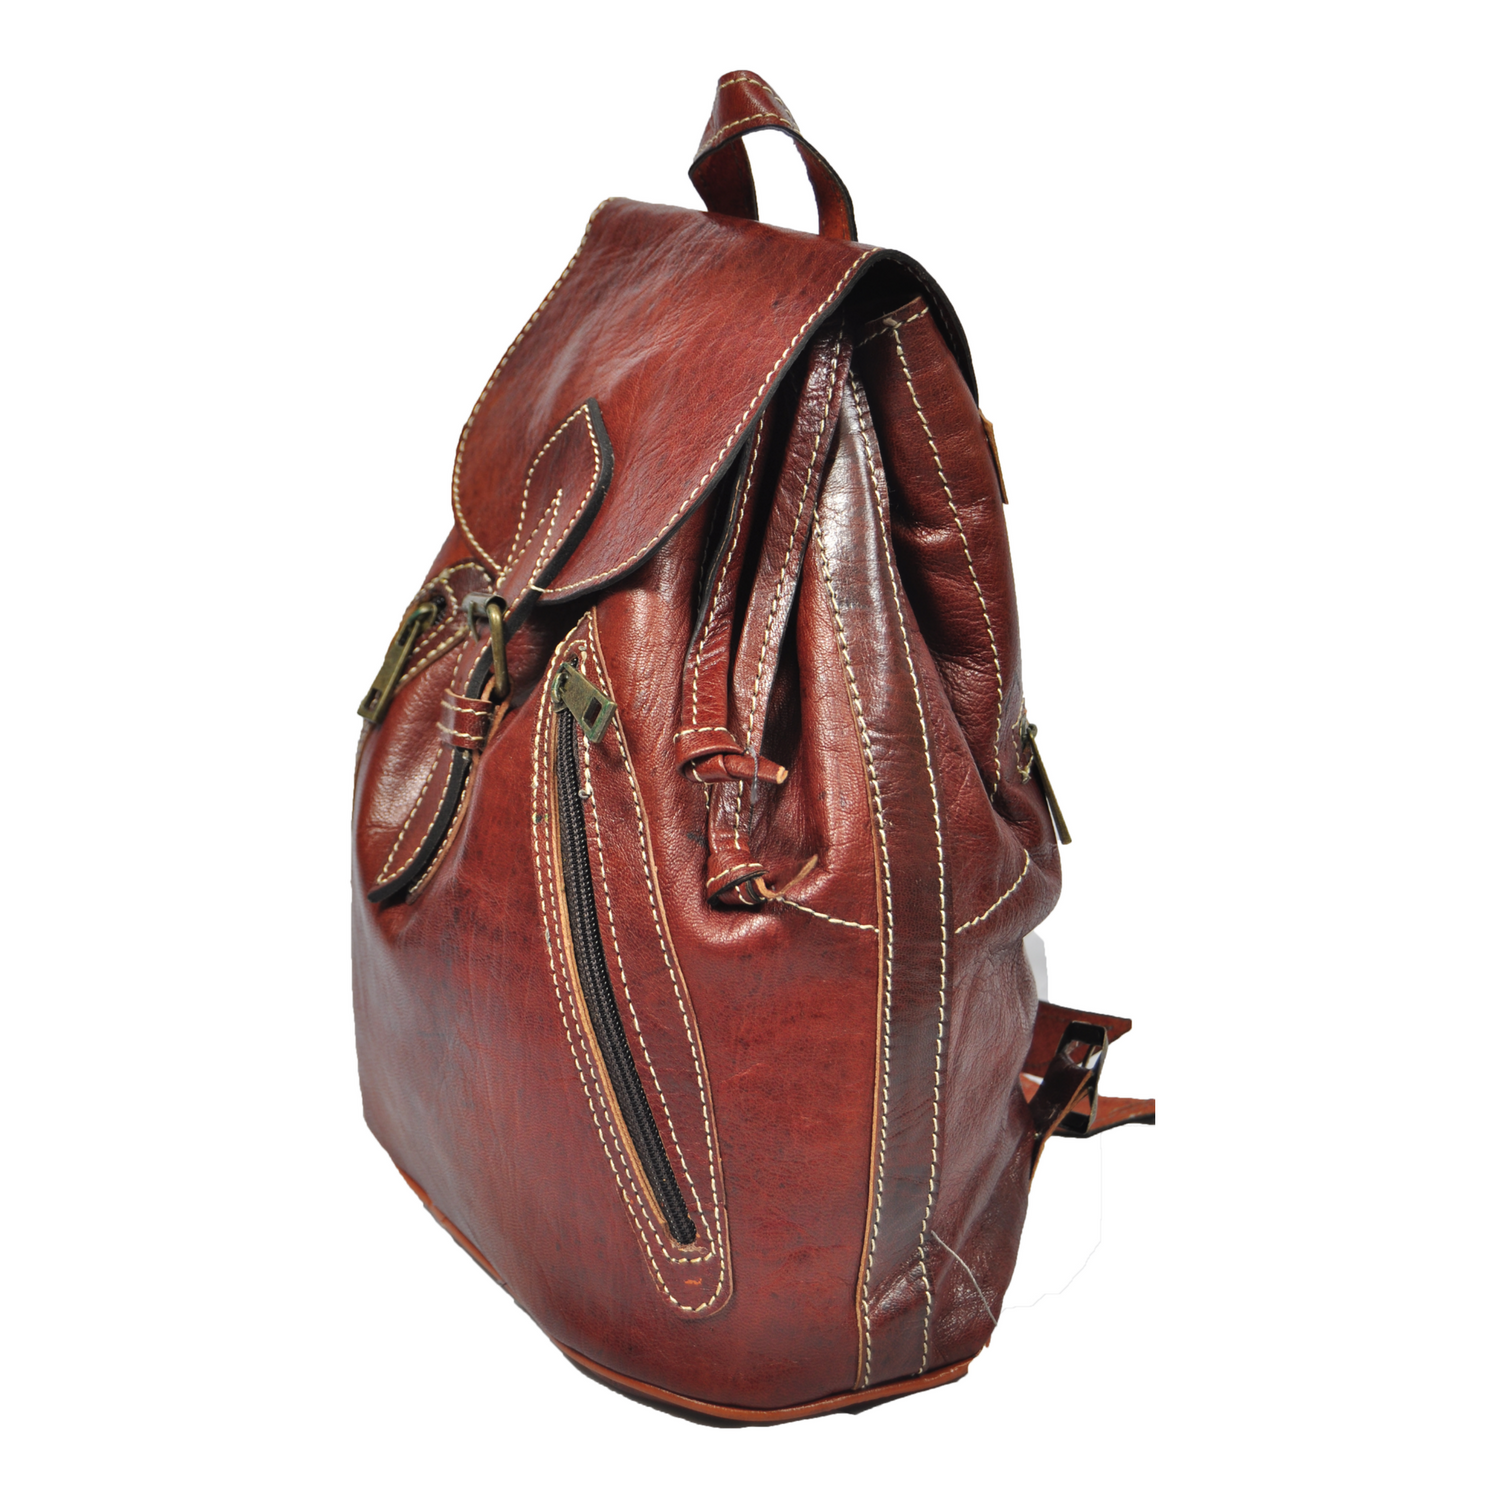 5c4036bf0cd3 Leather Backpack Bag Women Handmade Rucksack Travel New Shoulder S Vintage  School Genuine Handbag Womens Fashion